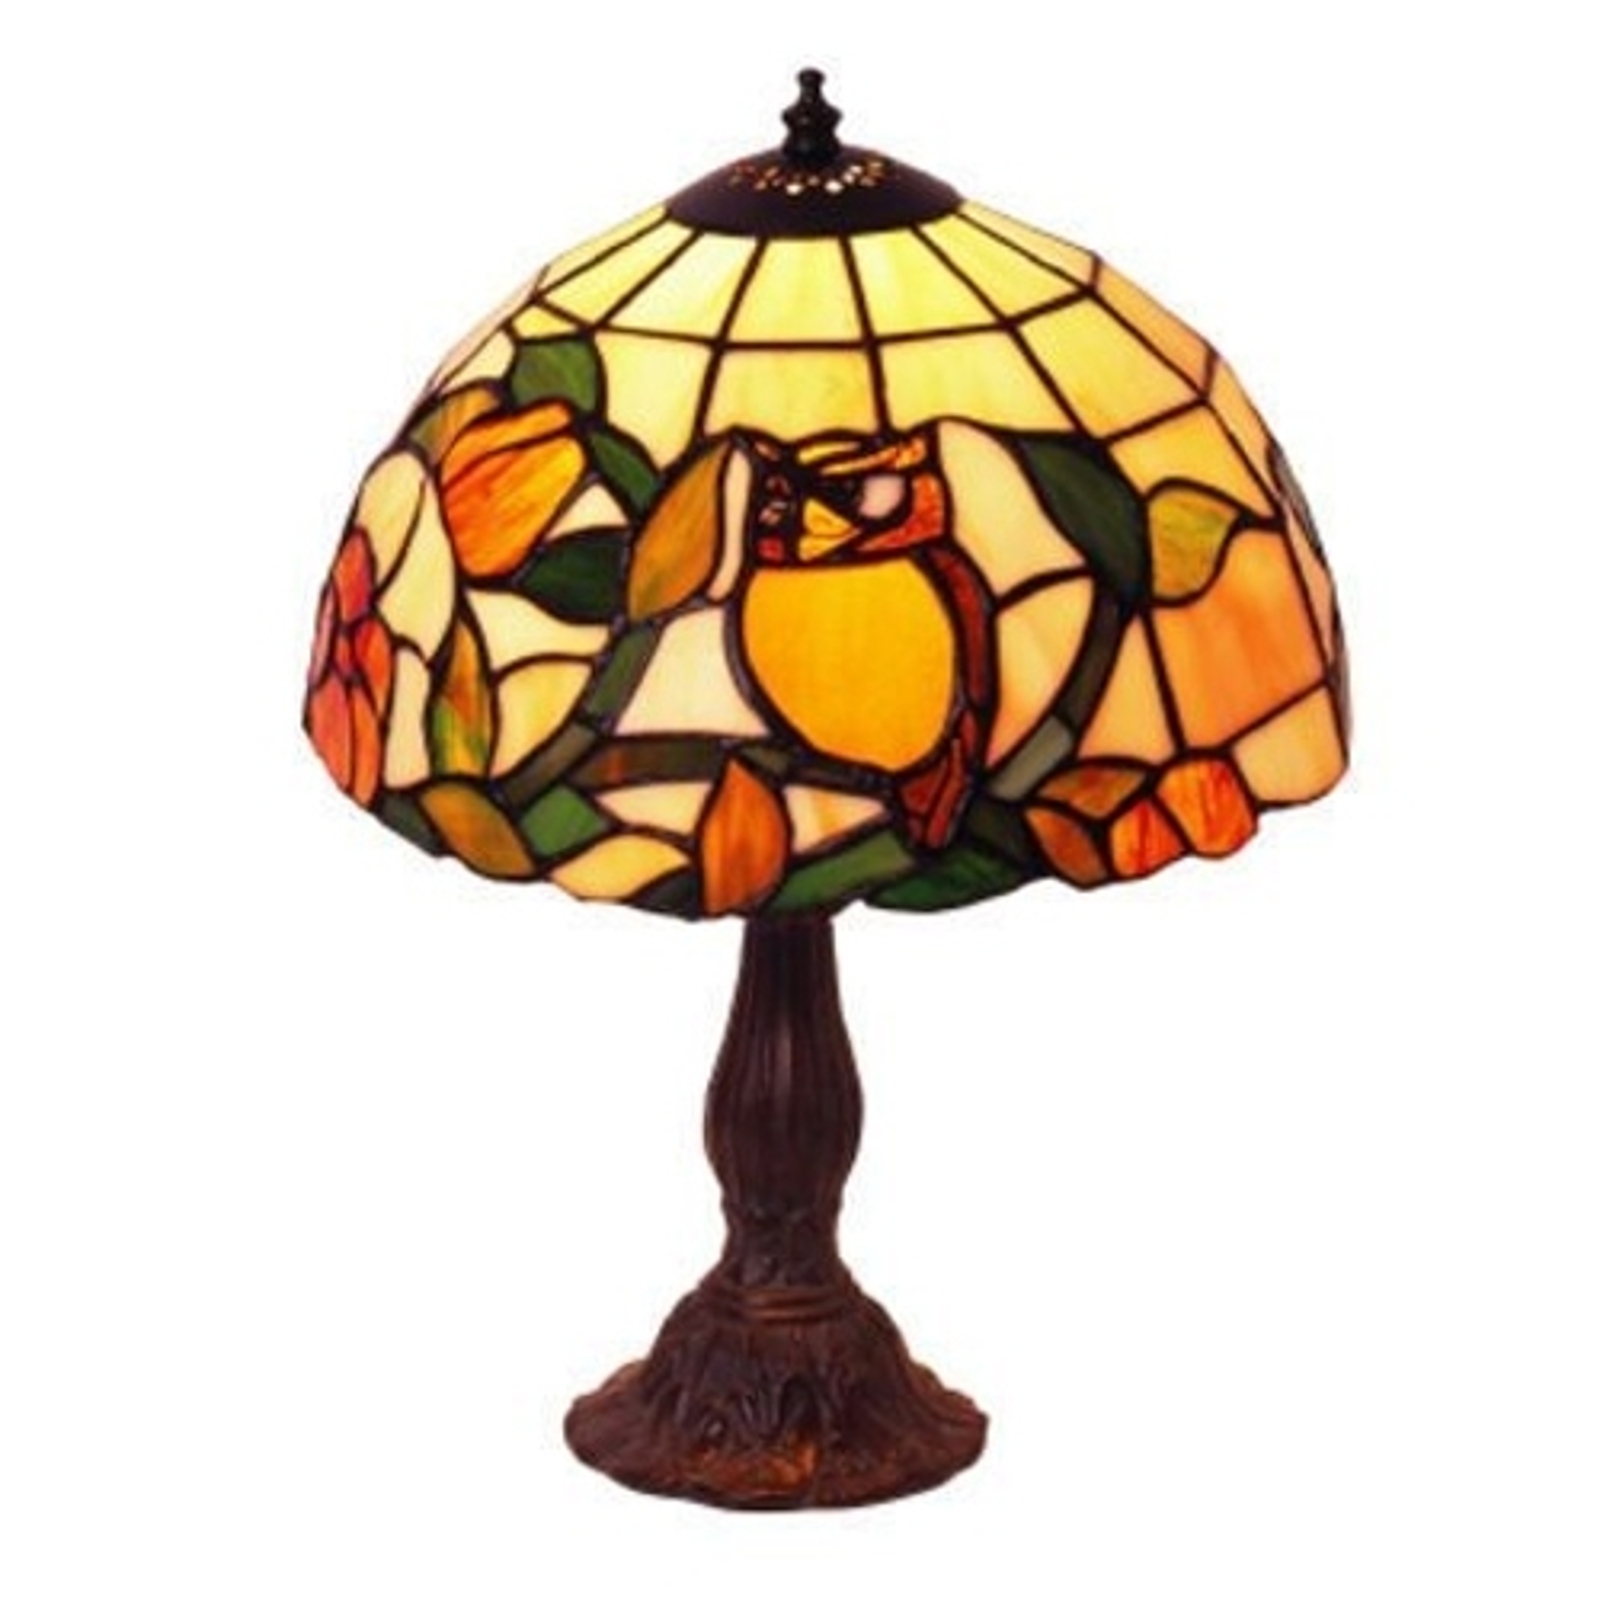 Motif table lamp JULIANA in the Tiffany style_1032198_1